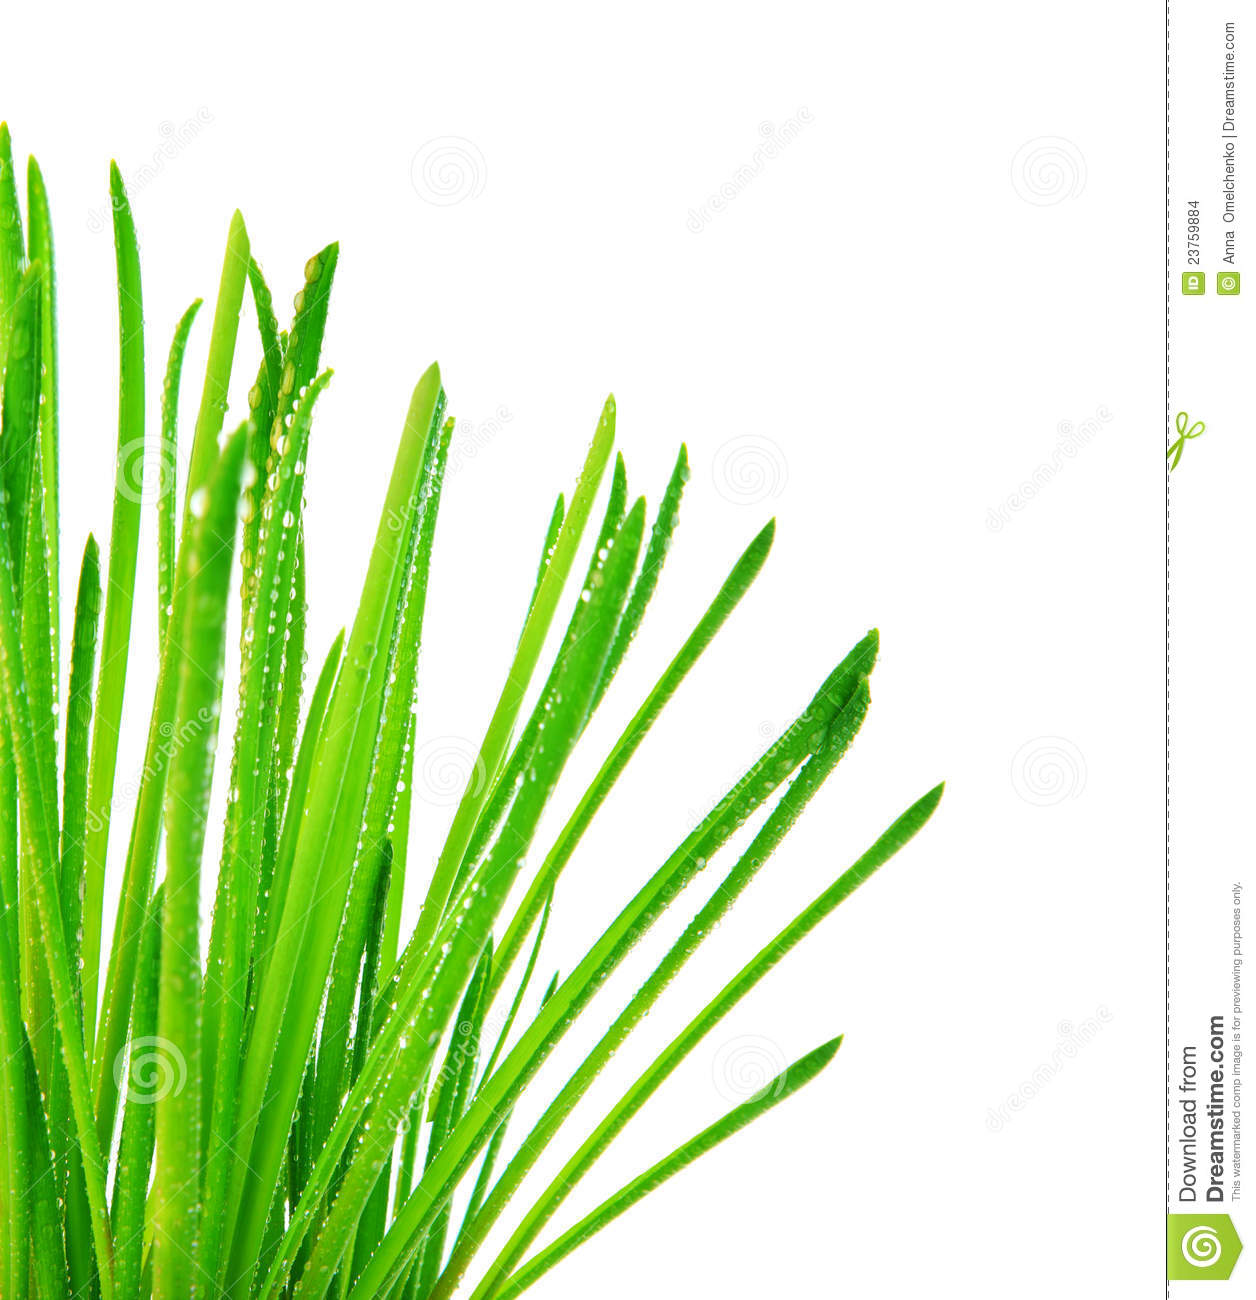 grass silhouette free at getdrawings com free for personal use rh getdrawings com